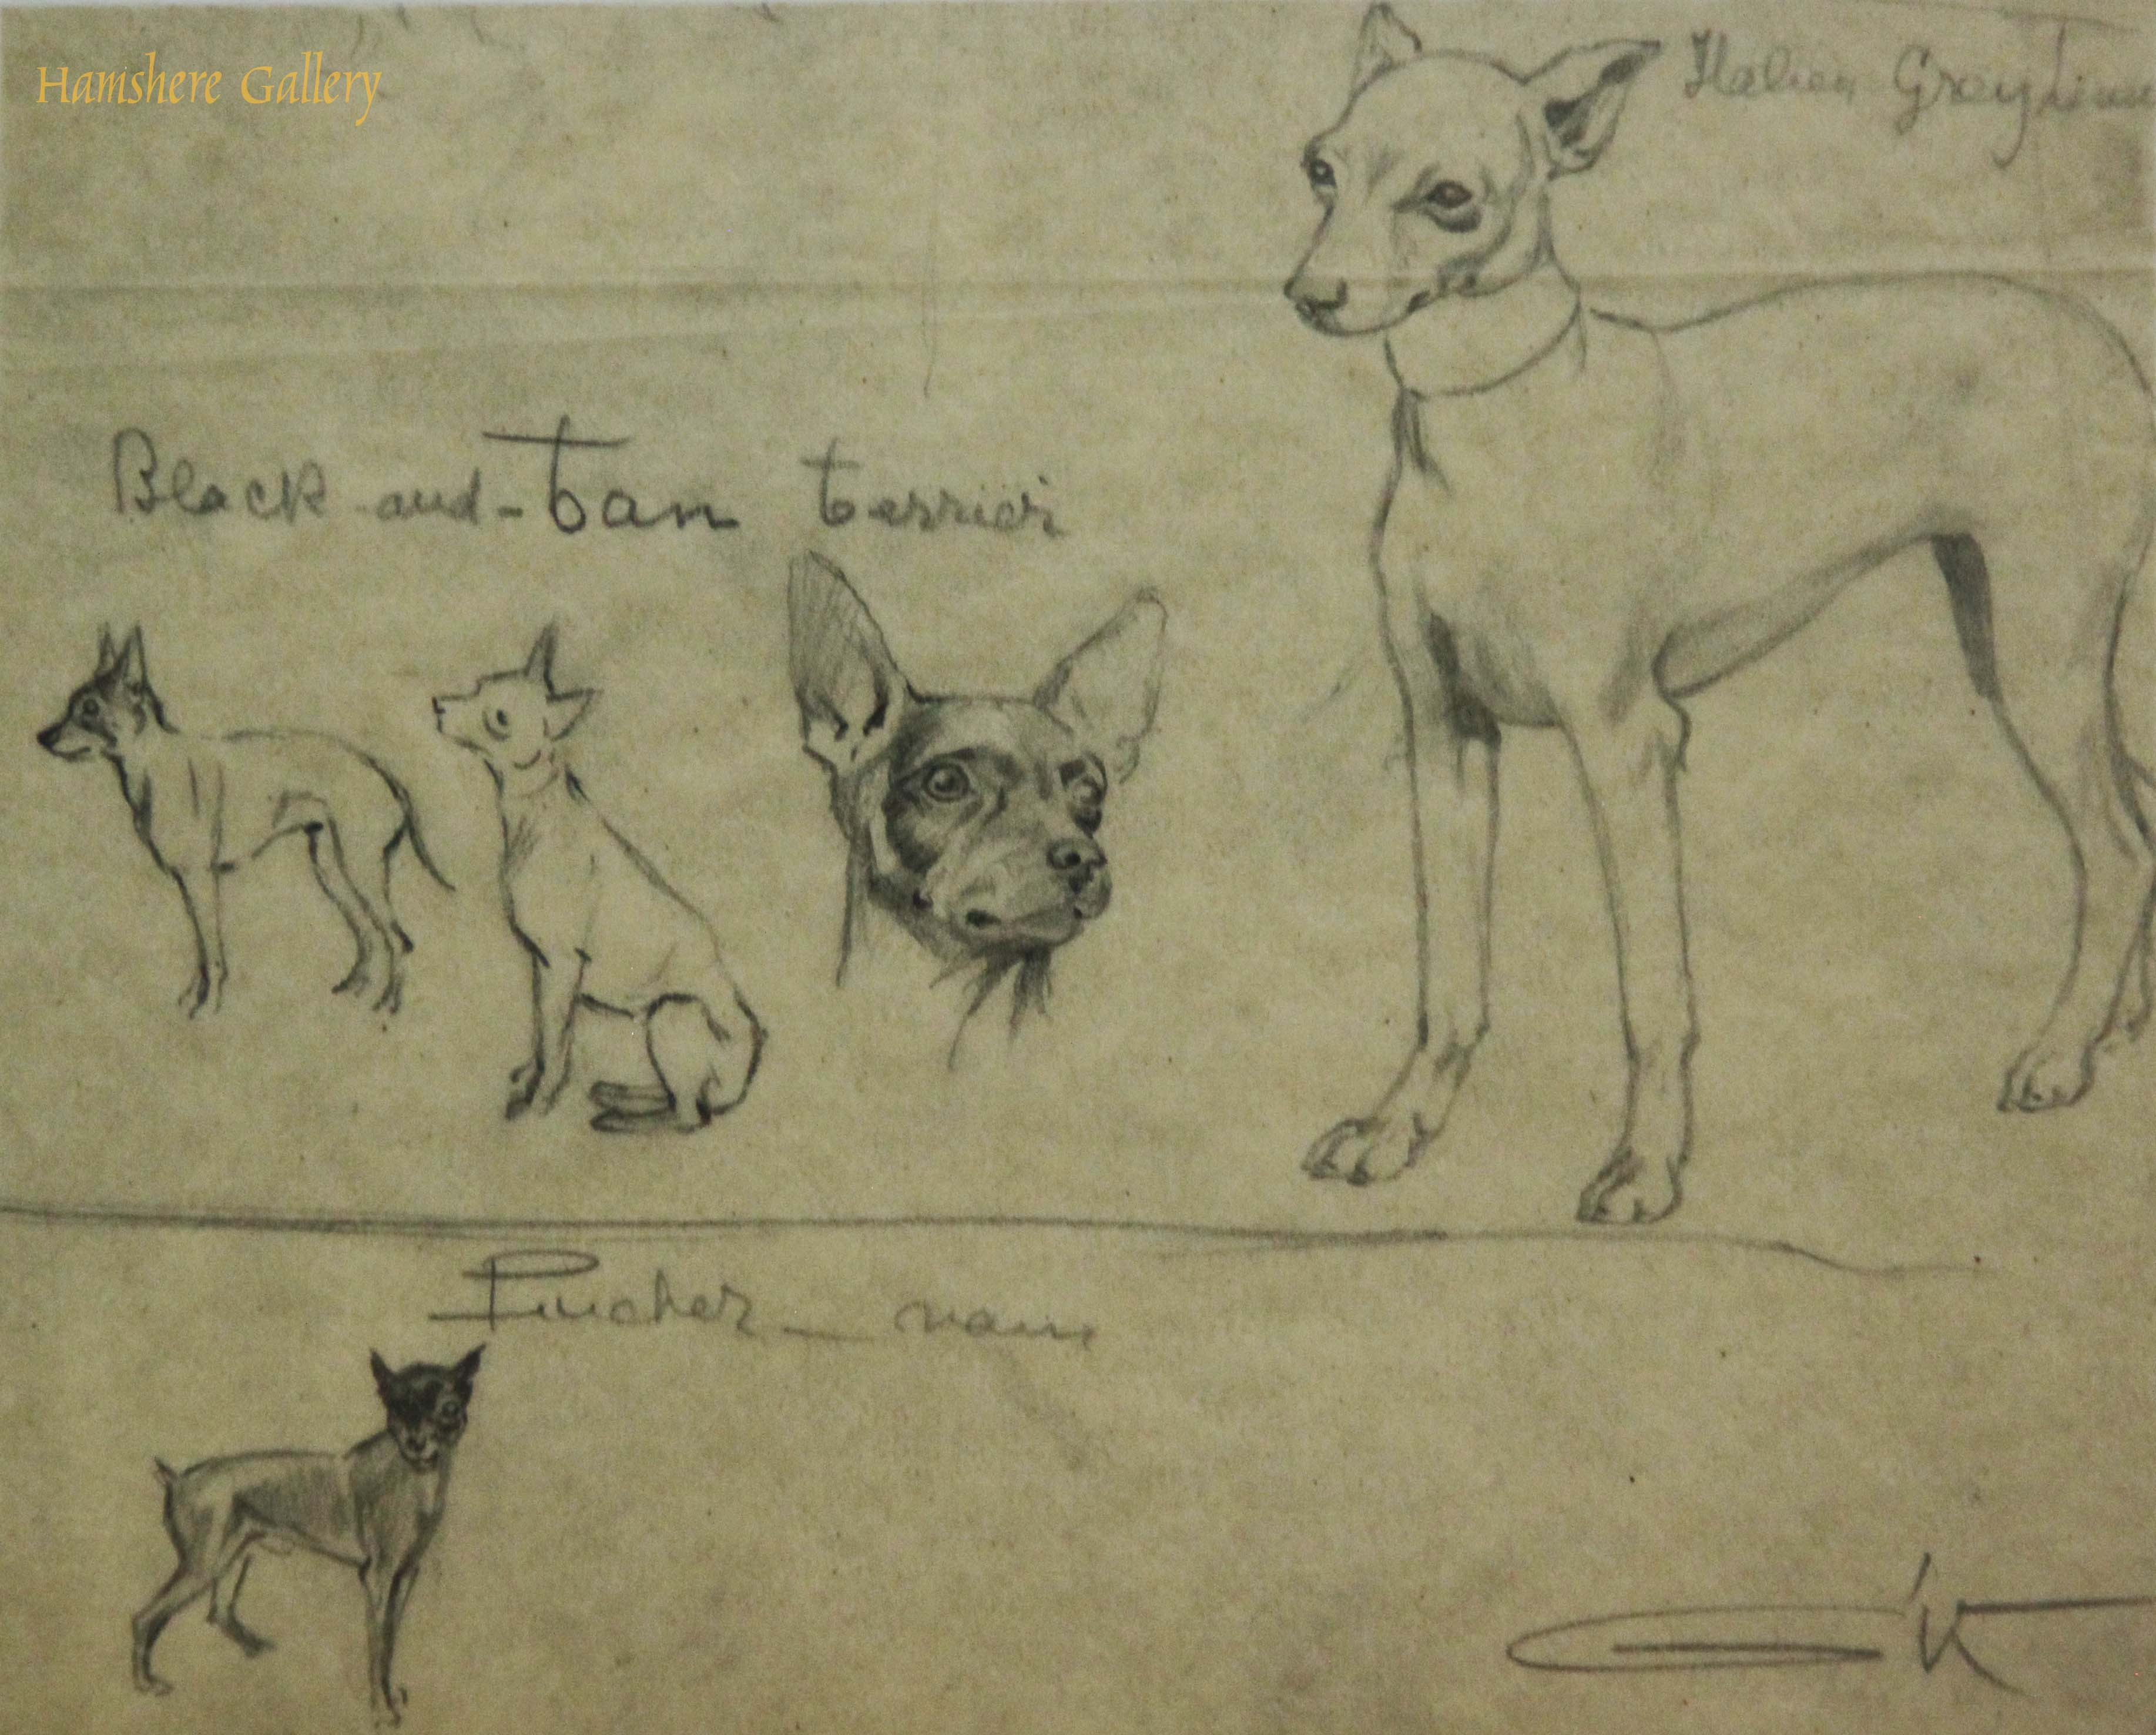 Click for larger image: Pencil studies of the Manchester Terrier / Pinscher / Italian Greyhound by Borris O�Klein / Jean Herblet  - Pencil studies of the Manchester Terrier / Pinscher / Italian Greyhound by Borris O�Klein / Jean Herblet